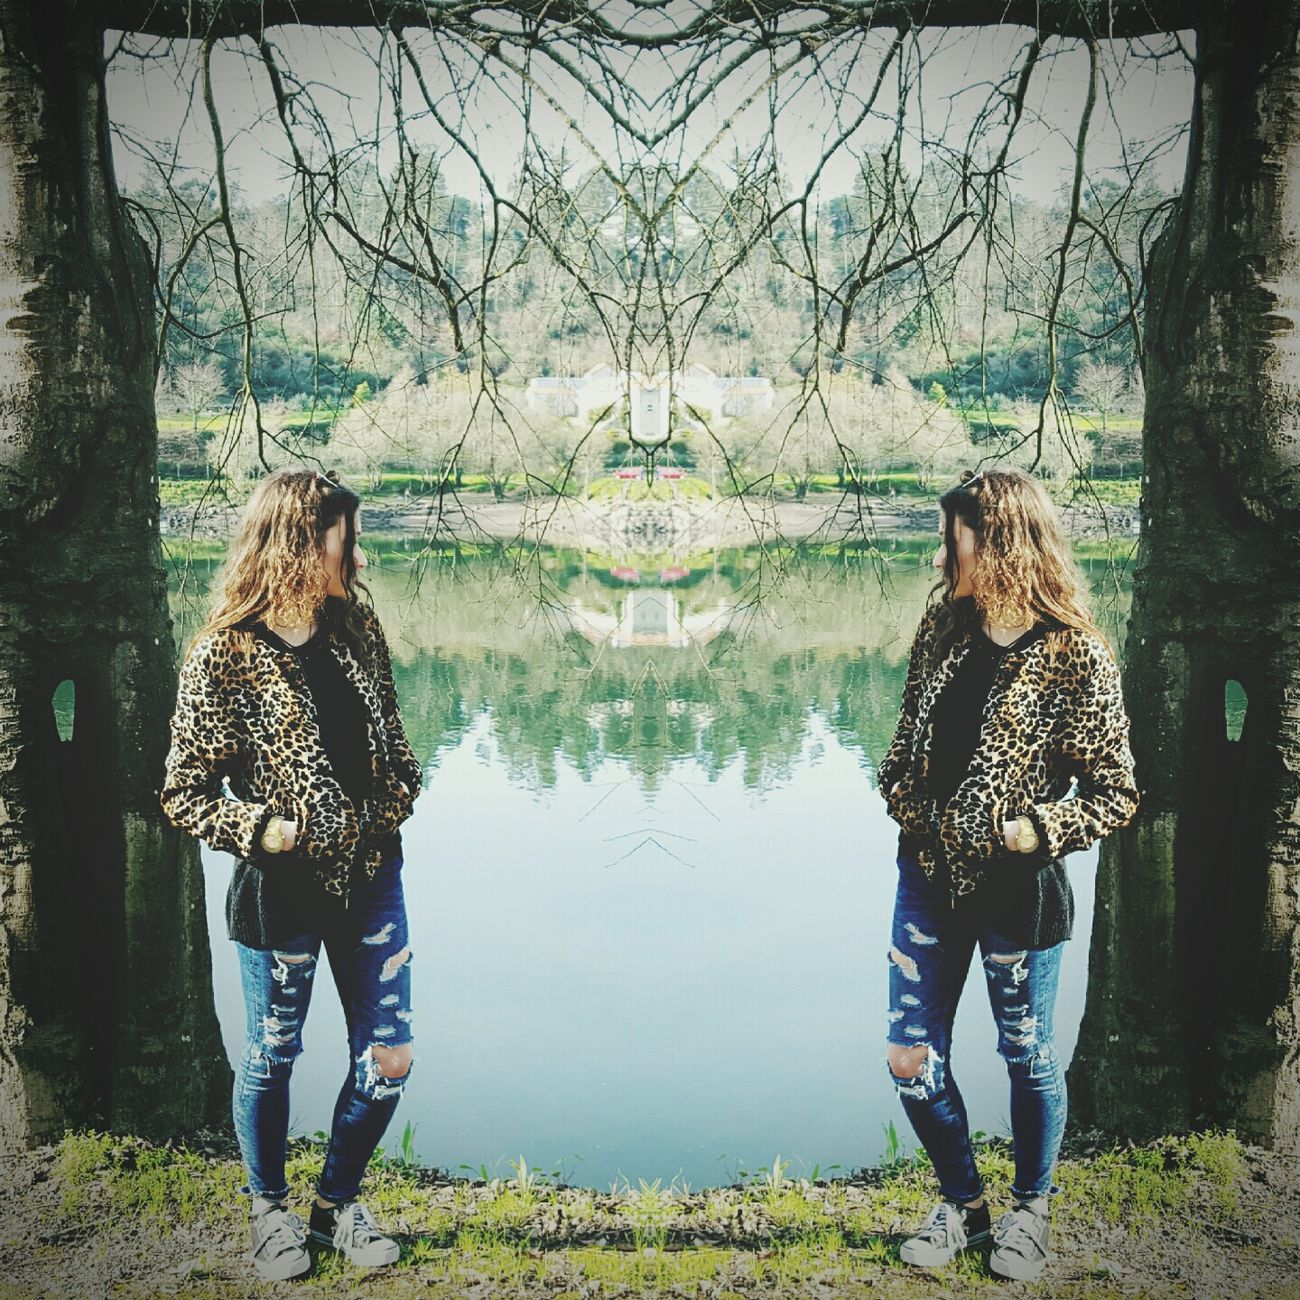 Back the river Me Girl Instagirl Mirror Mirror Pic Metalhead Metalheadgirl Alternative Alternativegirl Alternativemood Alternativestyle Alternativo River Riverside Riverview Point Of View Riverside Photography Riverlife PhonePhotography Phonecamera EyeEm Nature Water Sky Eyeemnaturelover